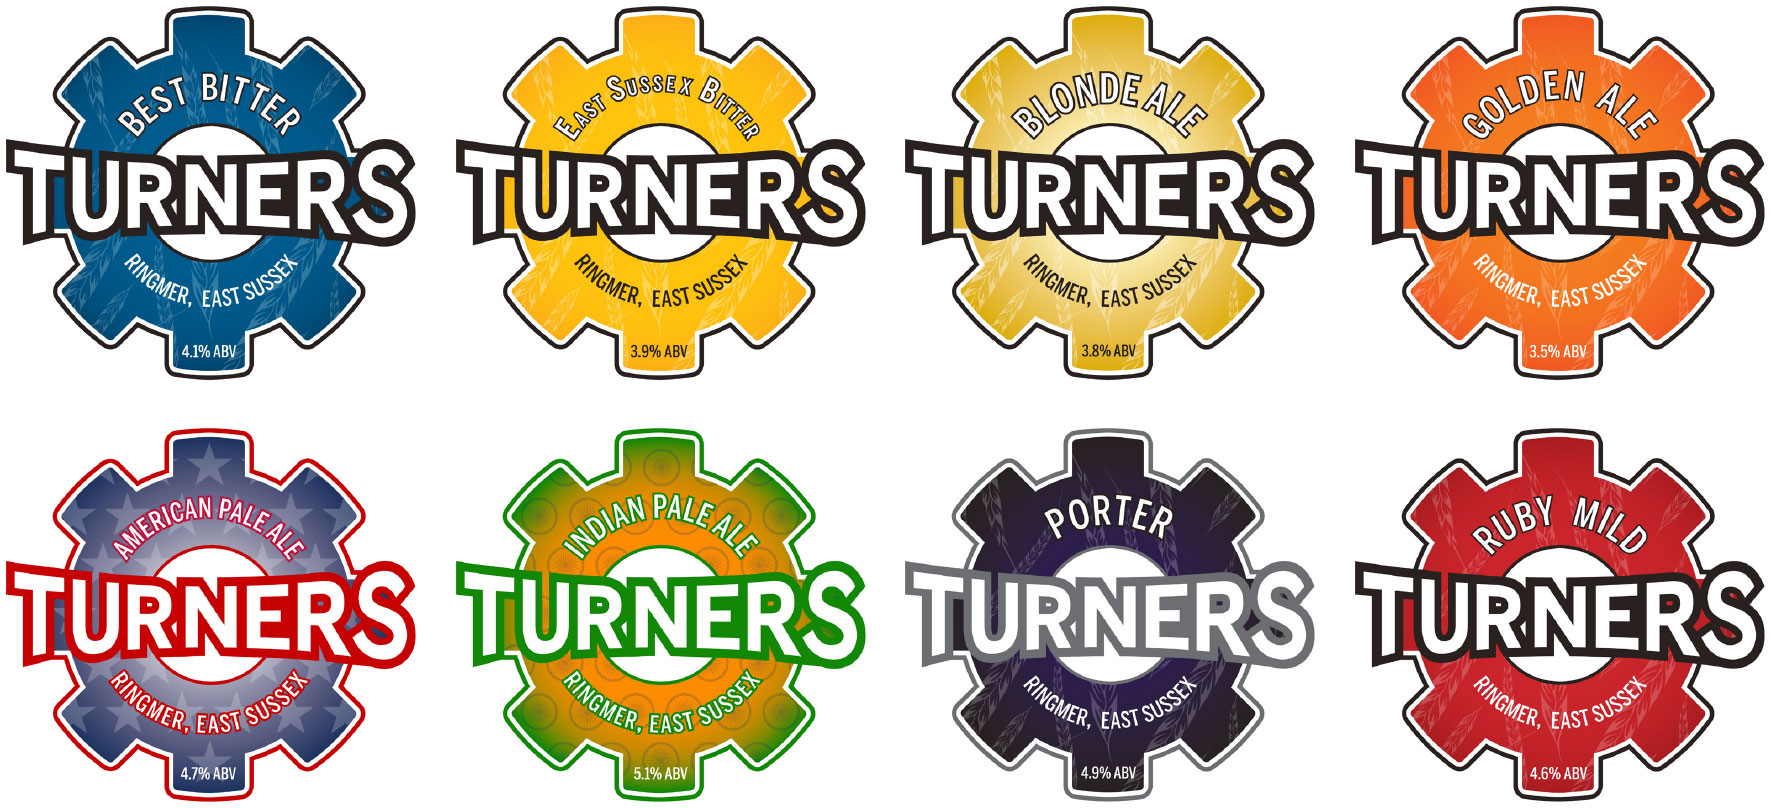 Turners Beer Old Logos